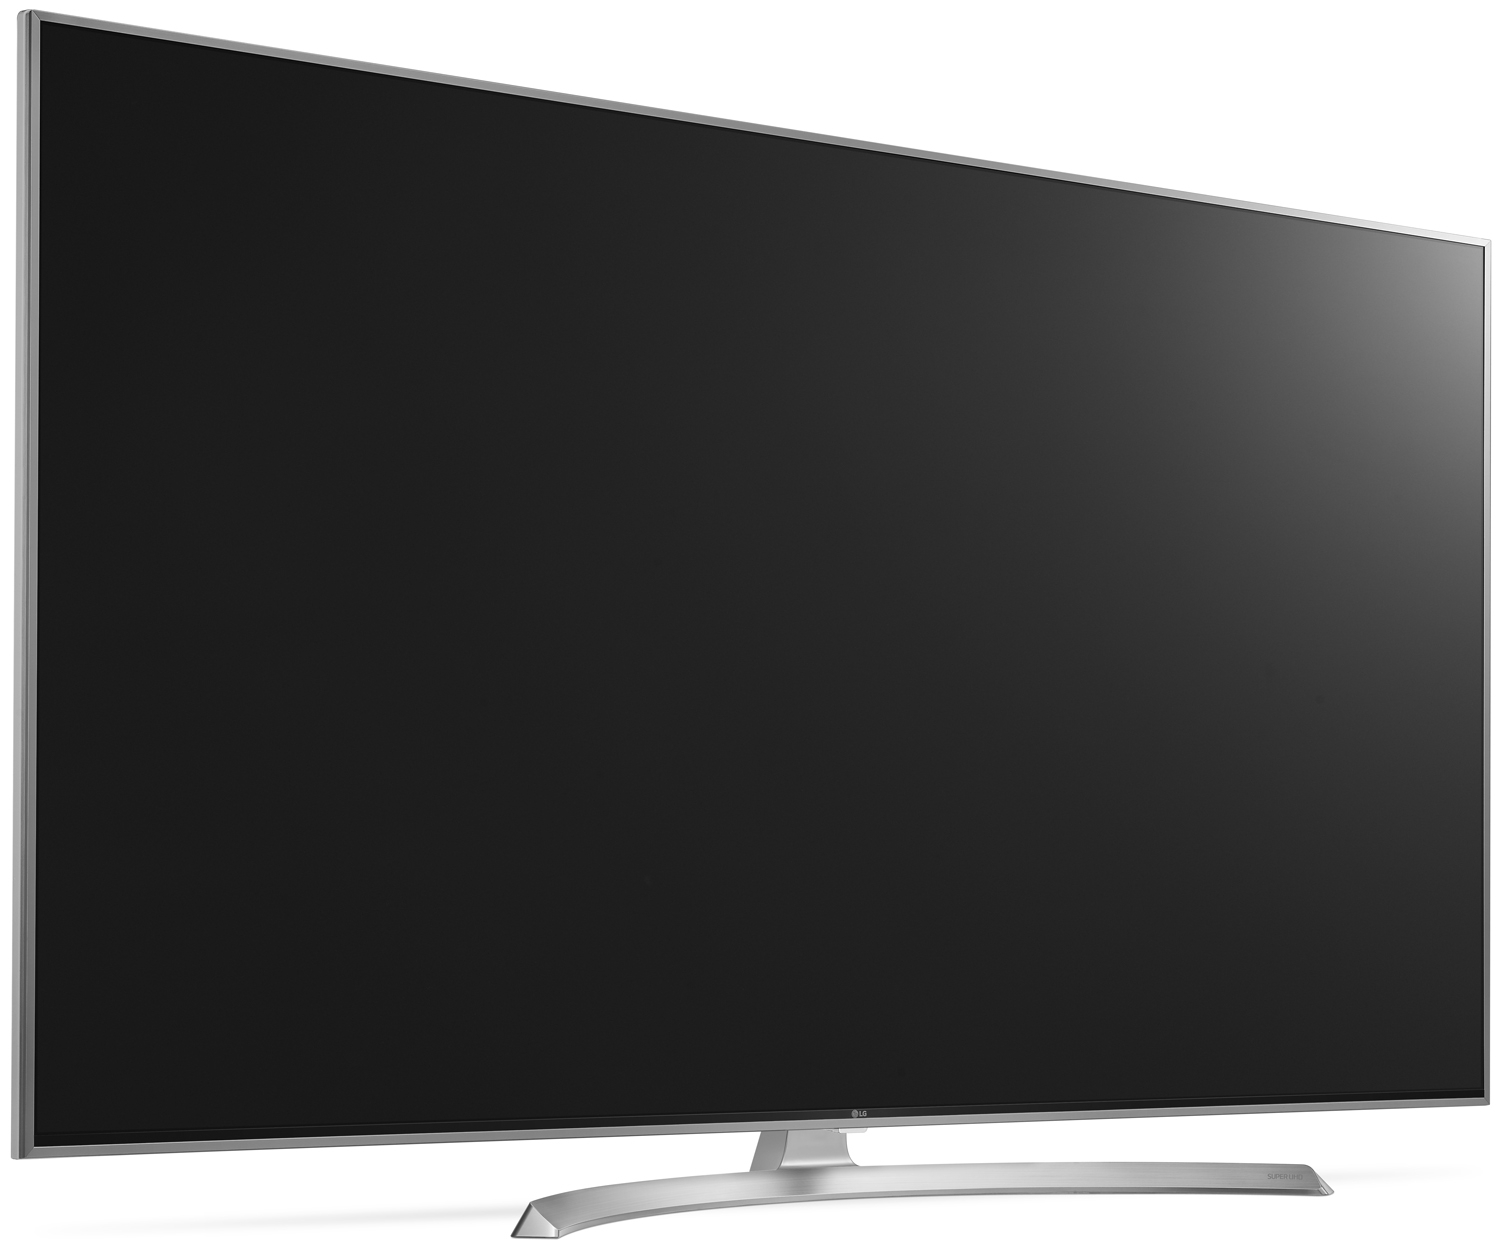 Lg 65sj8000 65 Quot Silver Suhd 4k Hdr Smart Led Hdtv With